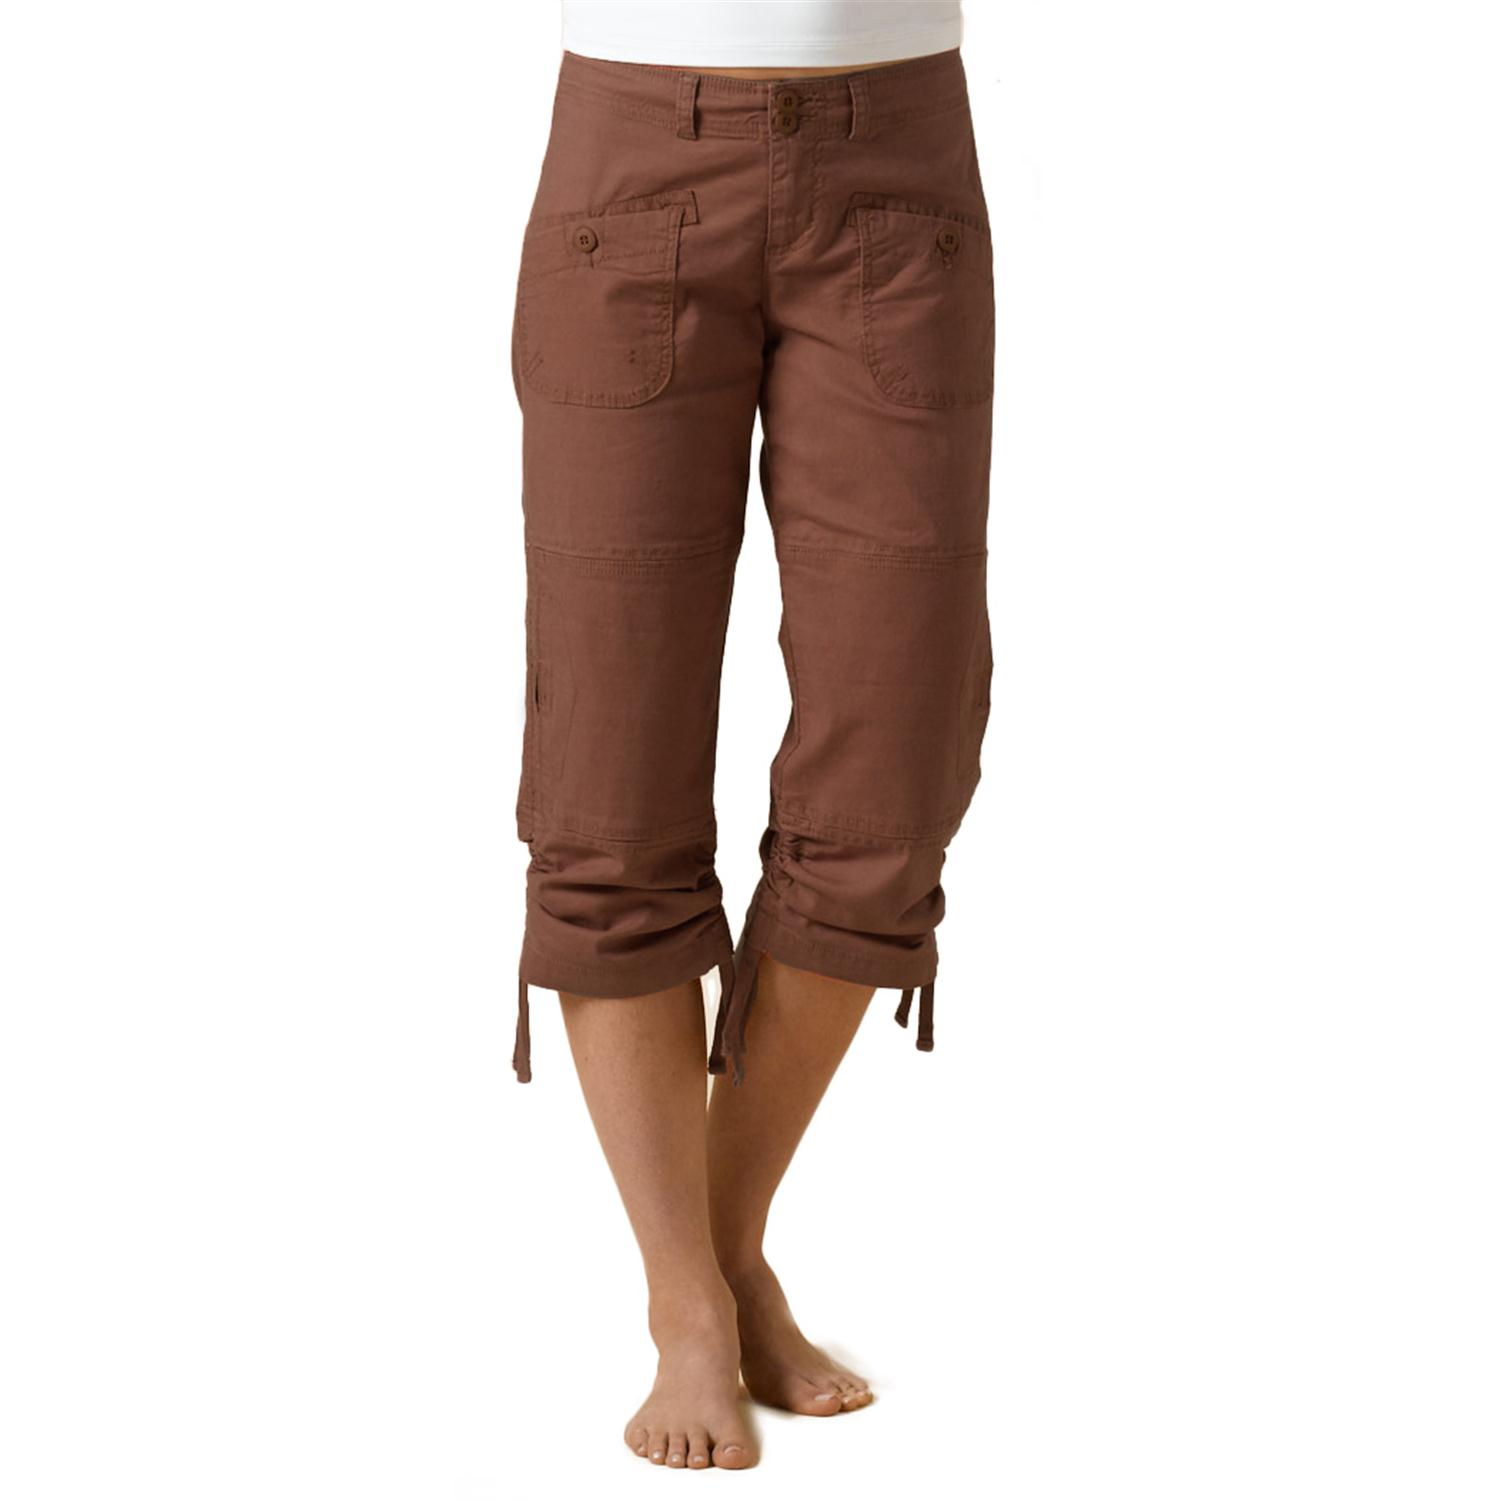 Sears has a great selection of women's capris. Find the best women's capris from the brands you love at Sears.